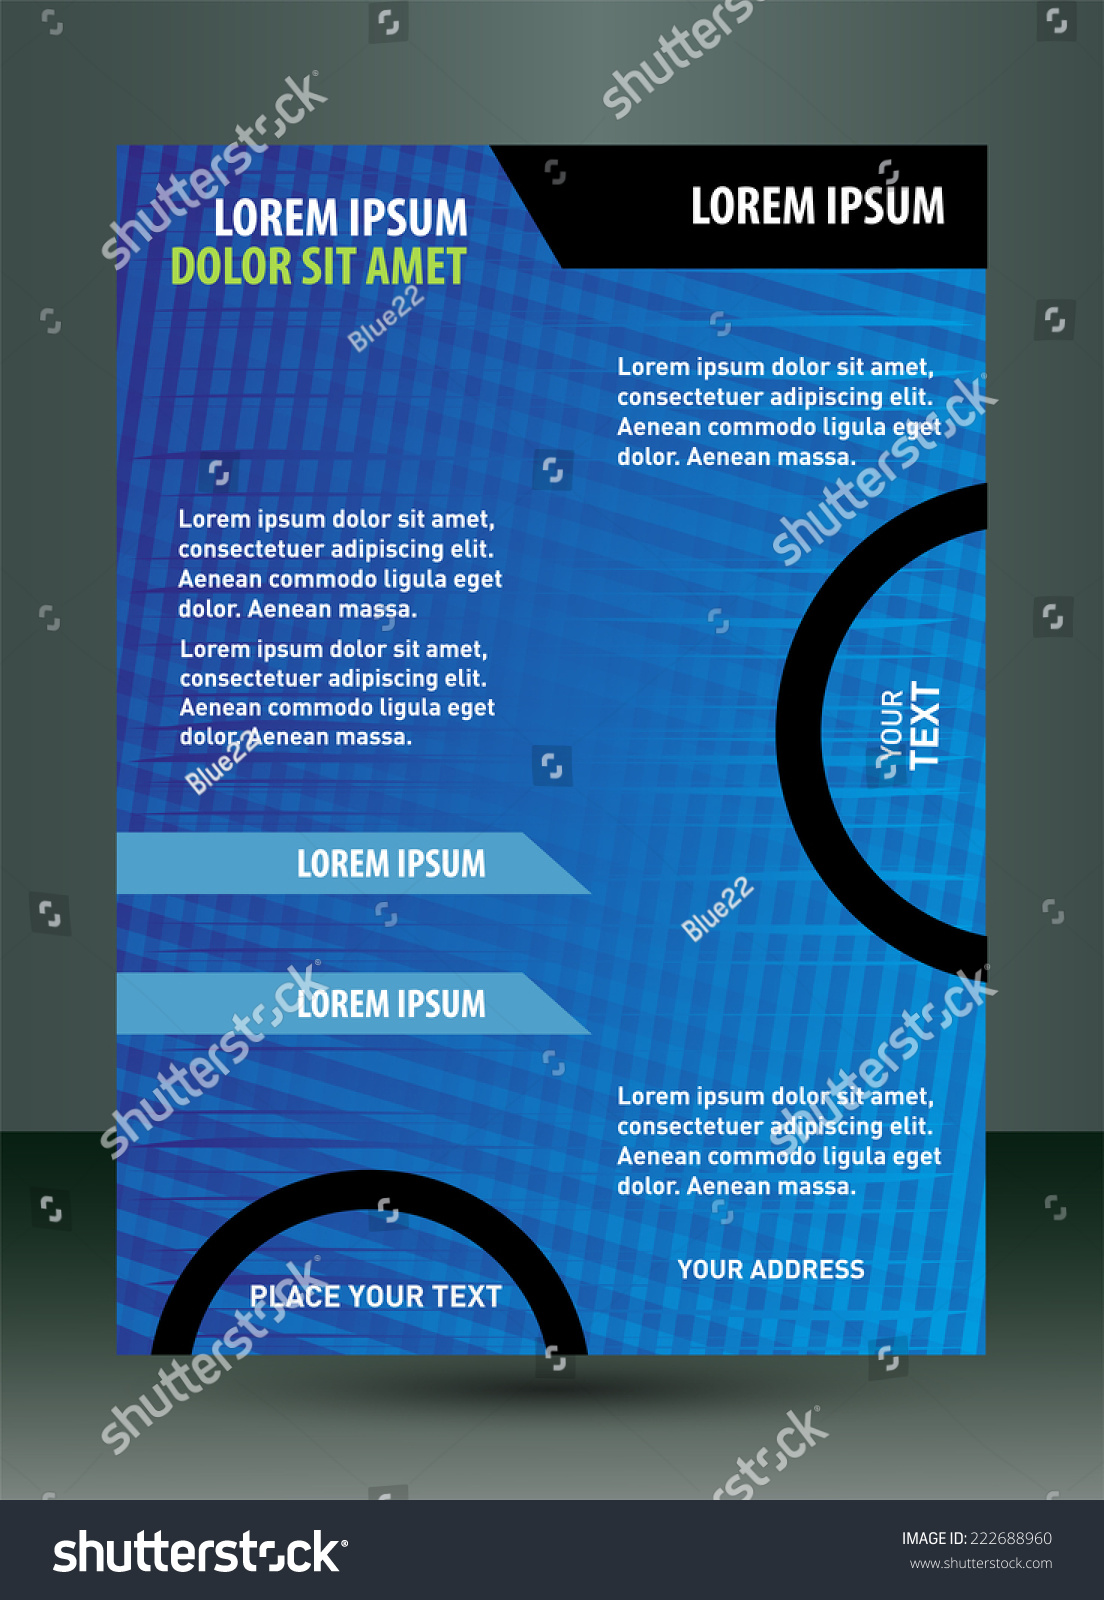 Business Flyer Template, Cover Design With Blue